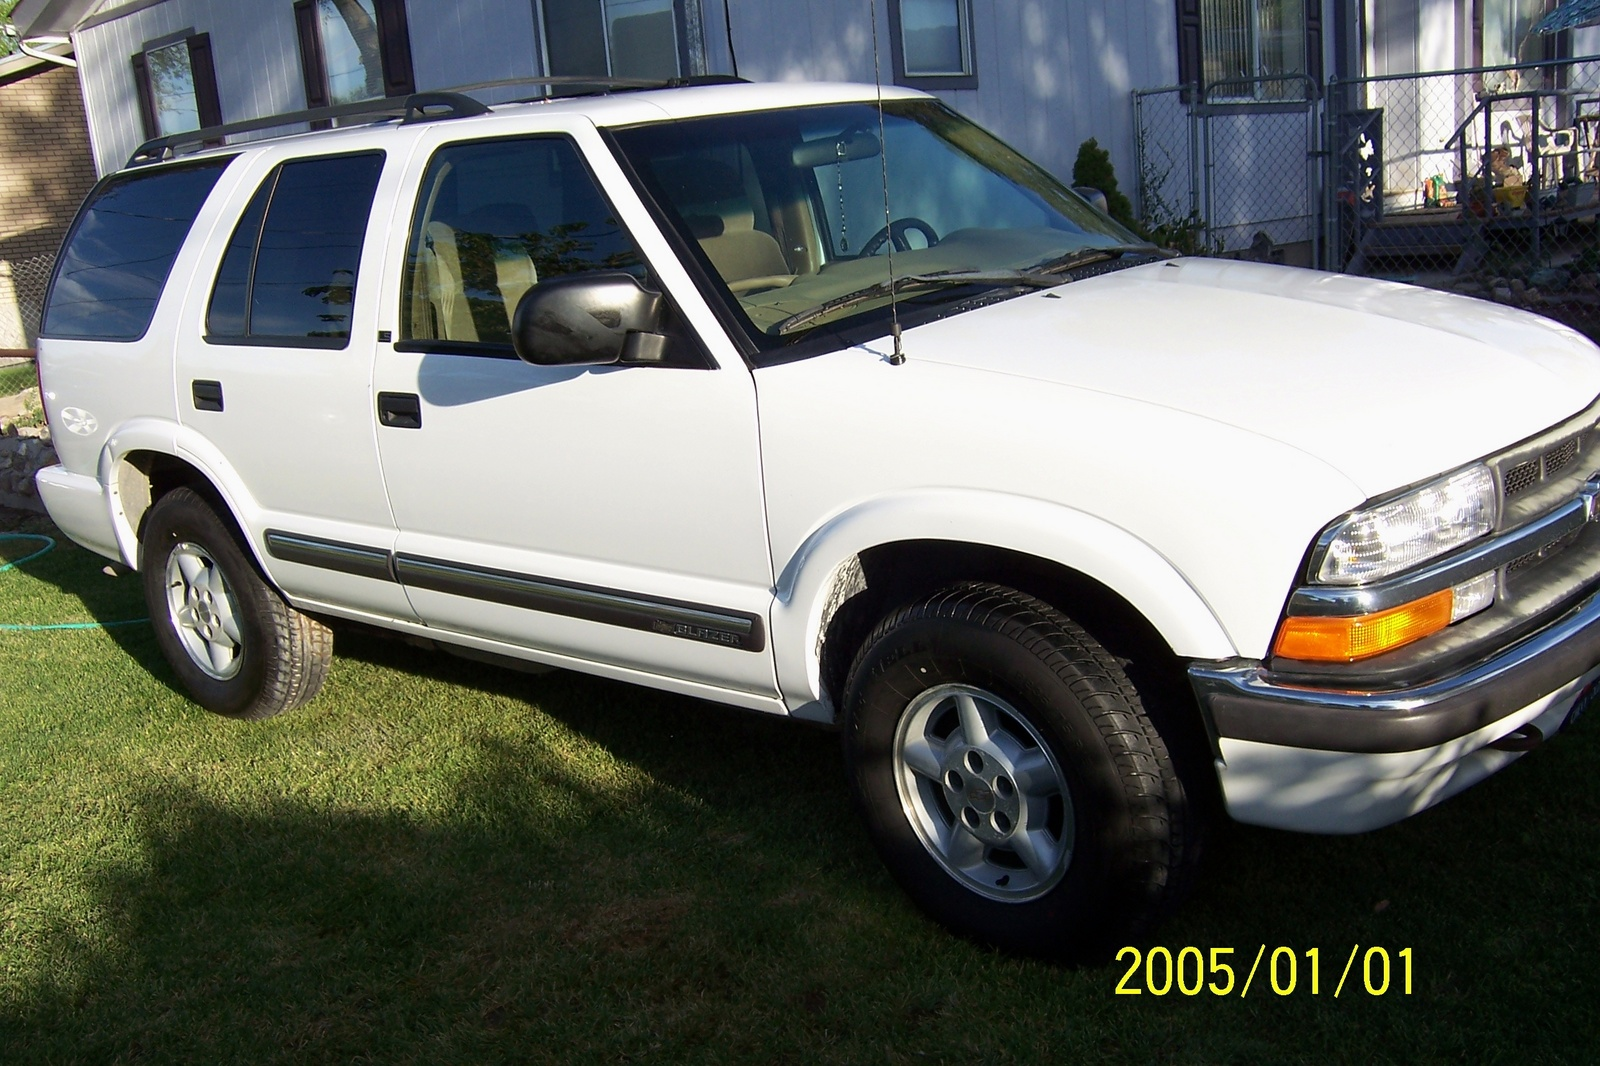 Picture of 2001 Chevrolet Blazer 4 Dr LS 4WD SUV, exterior